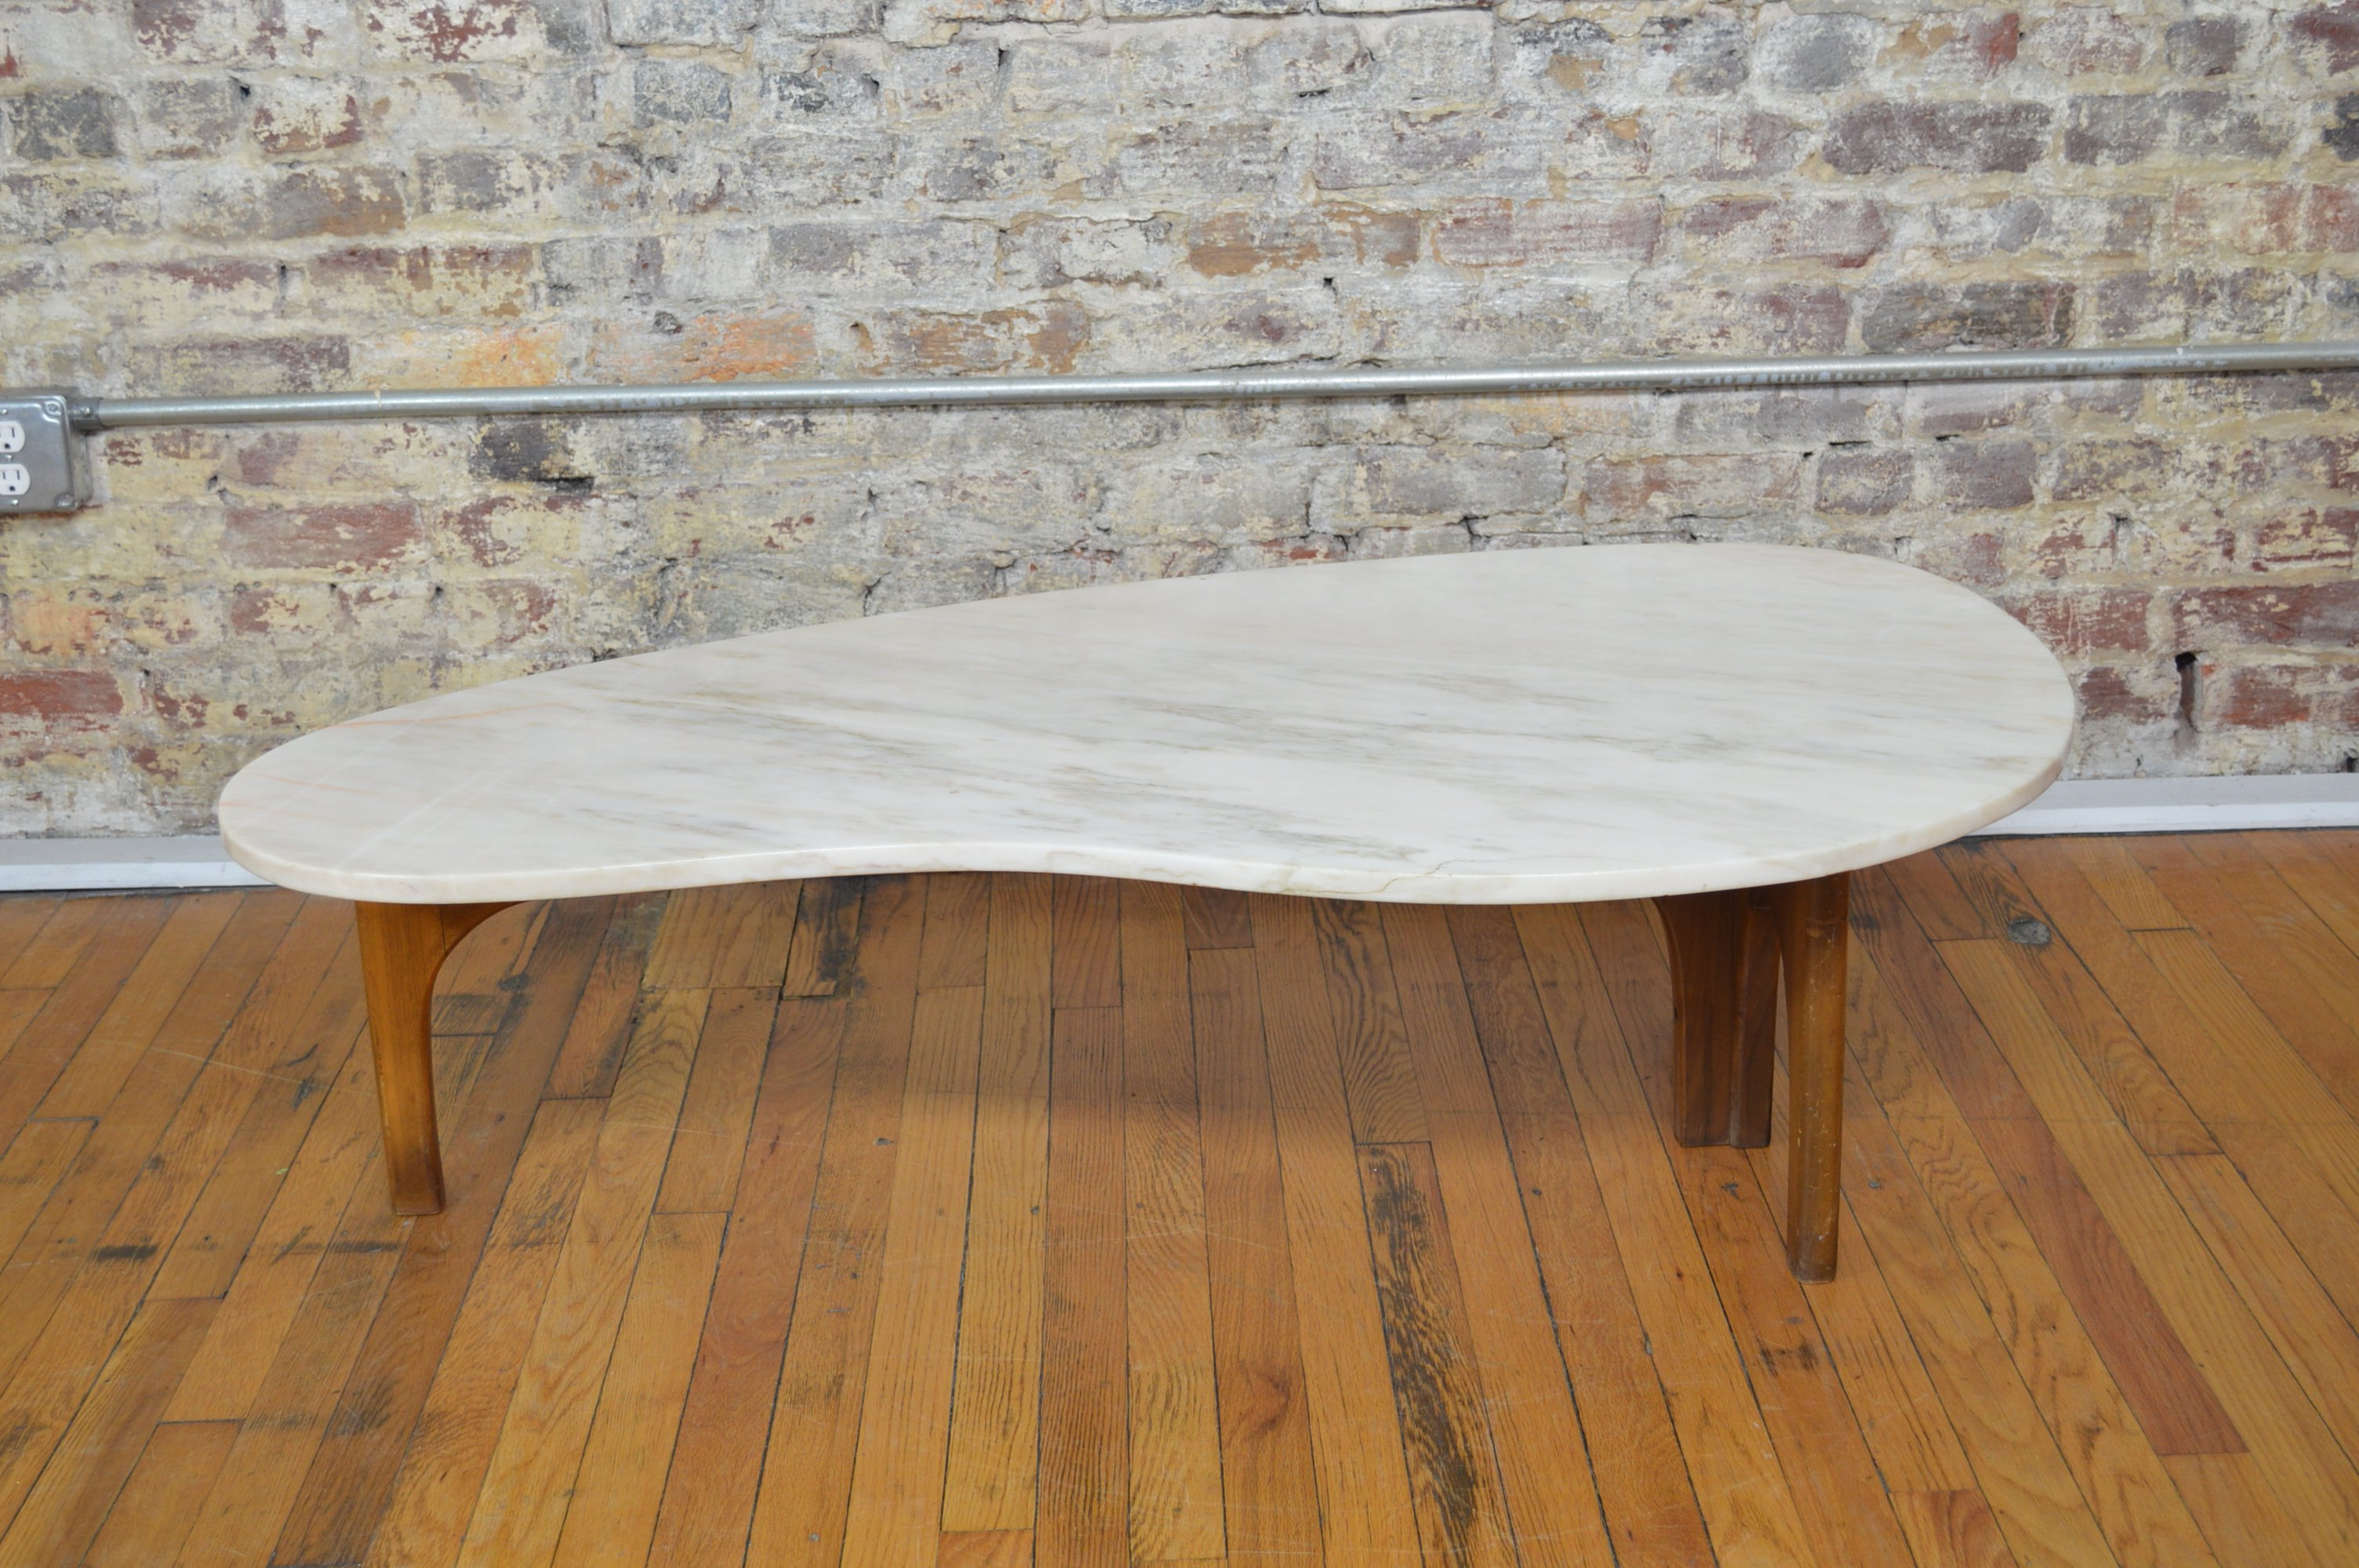 Fashionable Extra Mid Century Modern Marble Coffee Table Unique Harvey Probber For Mid Century Modern Marble Coffee Tables (View 9 of 20)